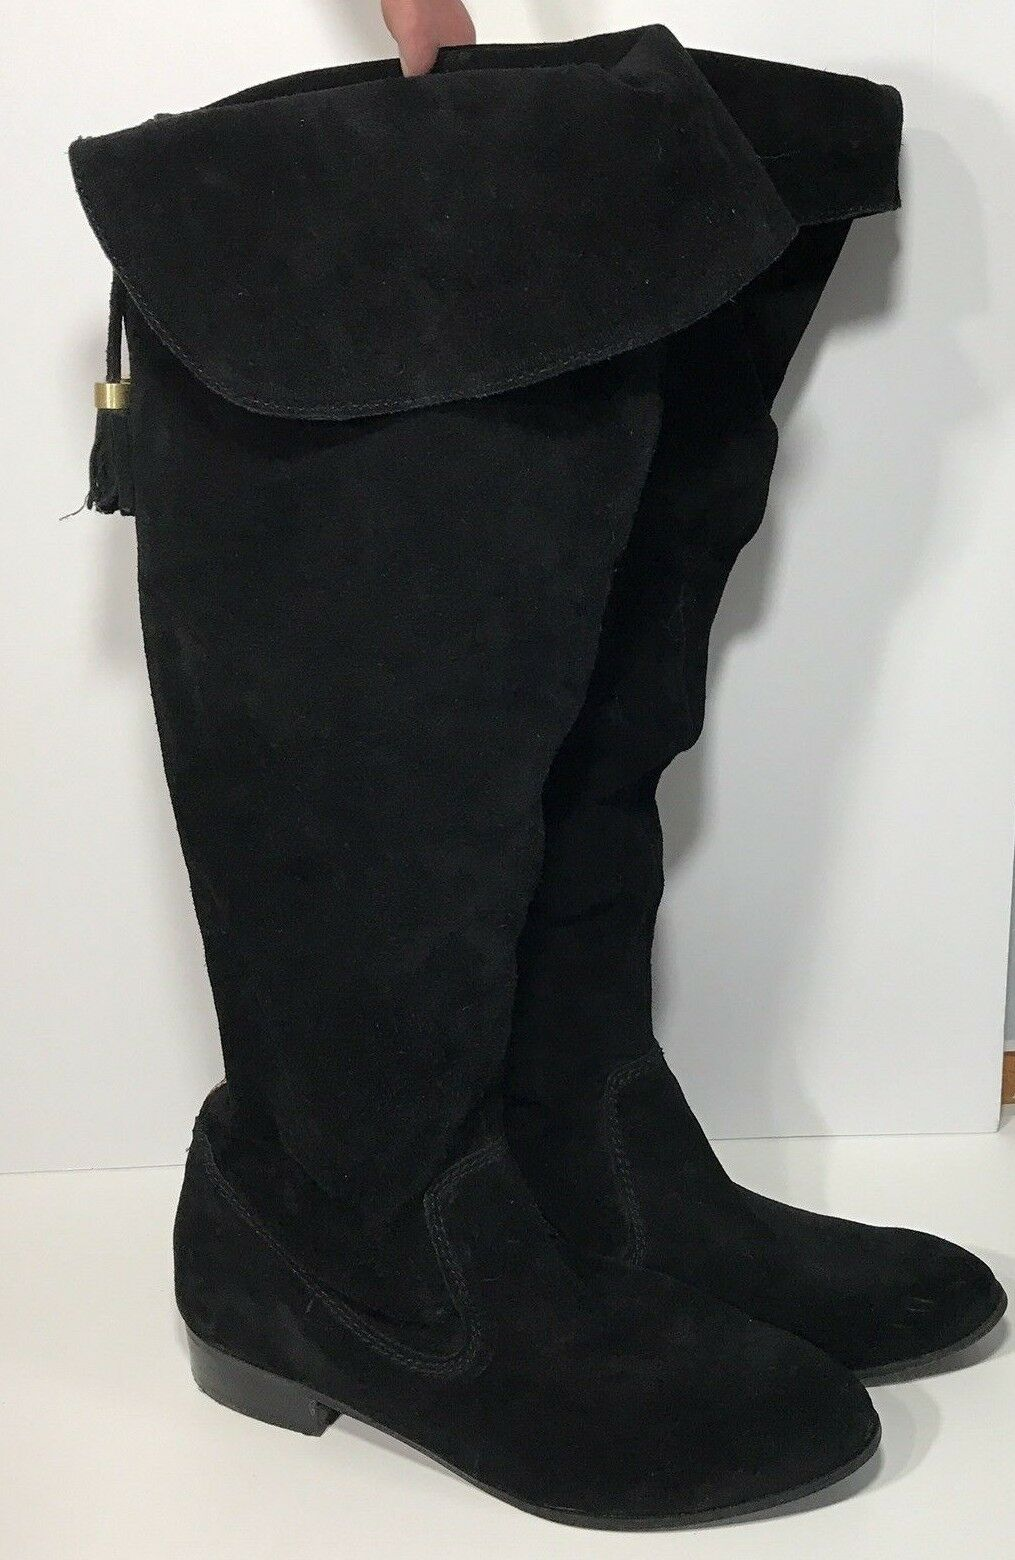 Enzo Angiolini 9 M Boots Earandies Tall Suede Leather Flaw Peeling Inside Womens